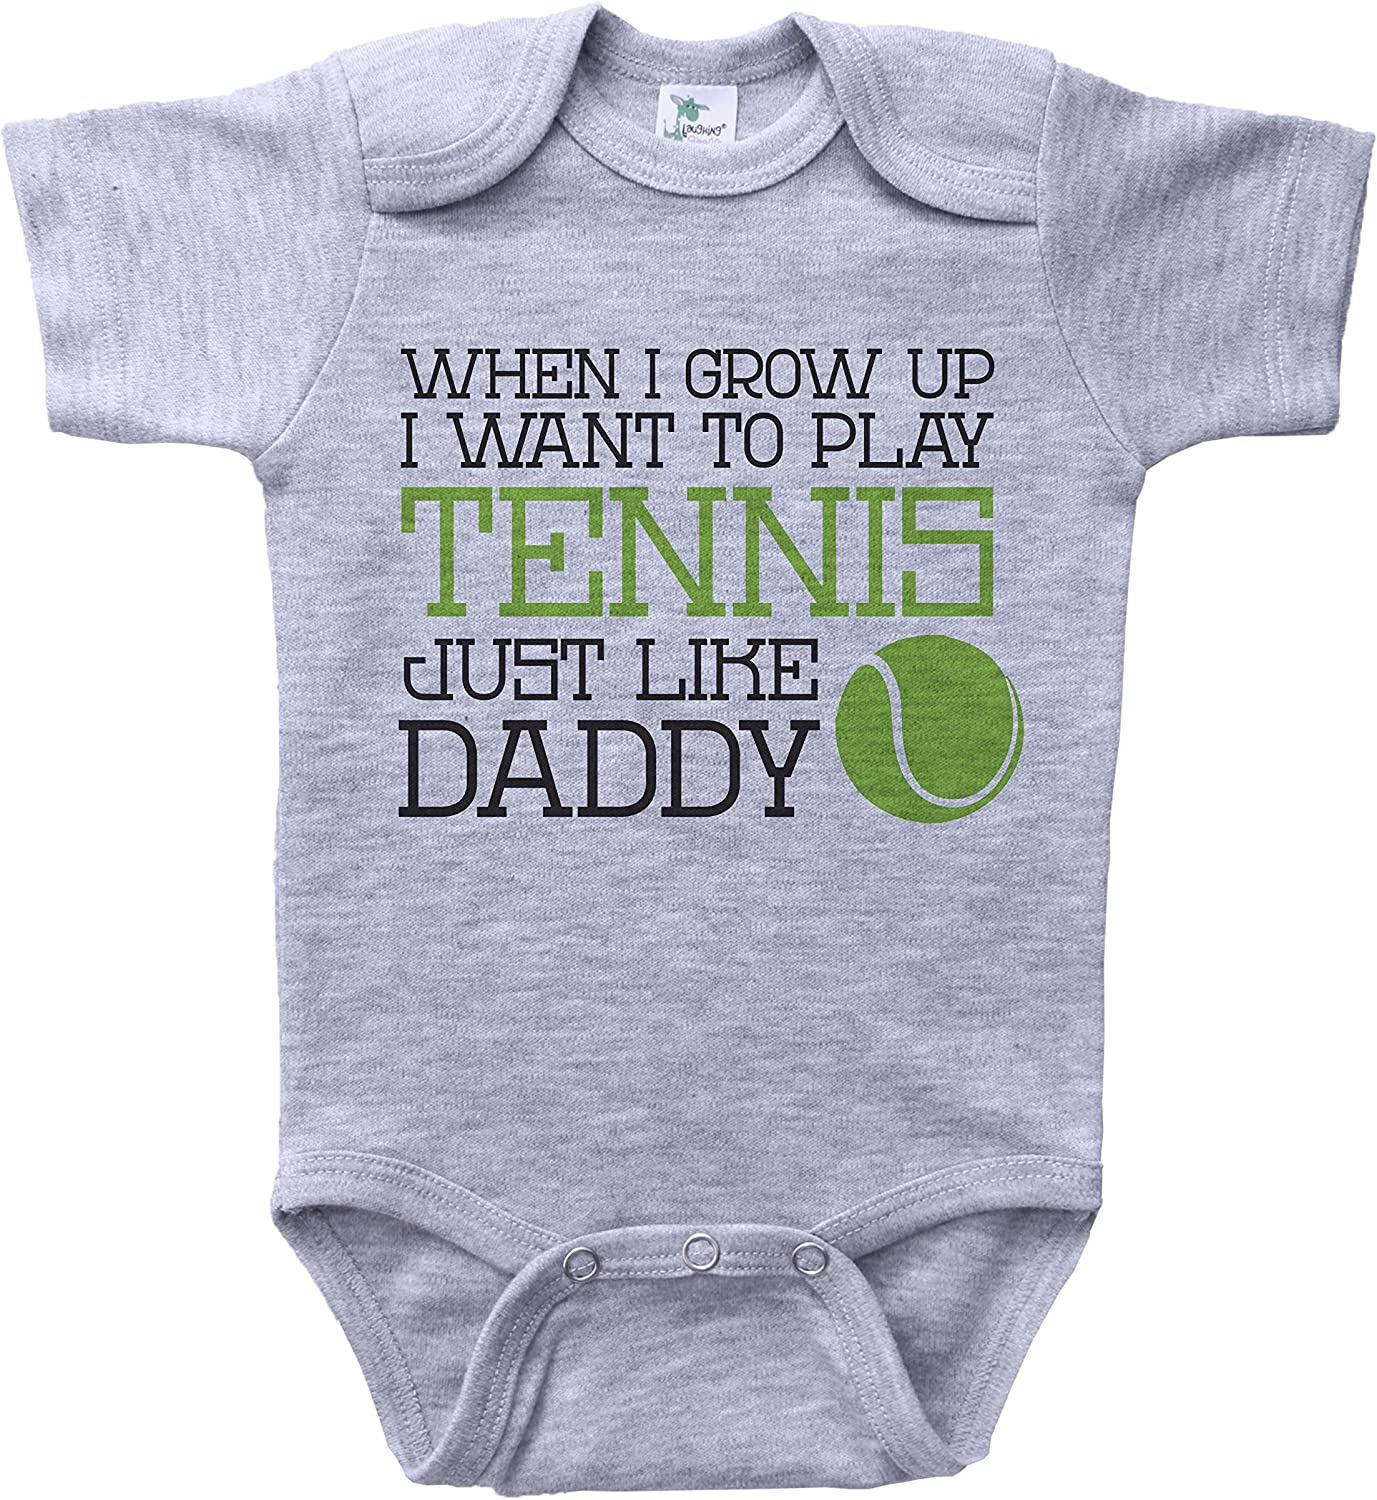 White, 24 Months So Relative Unisex Baby When I Grow Up I Want To Be Just Like Daddy T-Shirt Romper